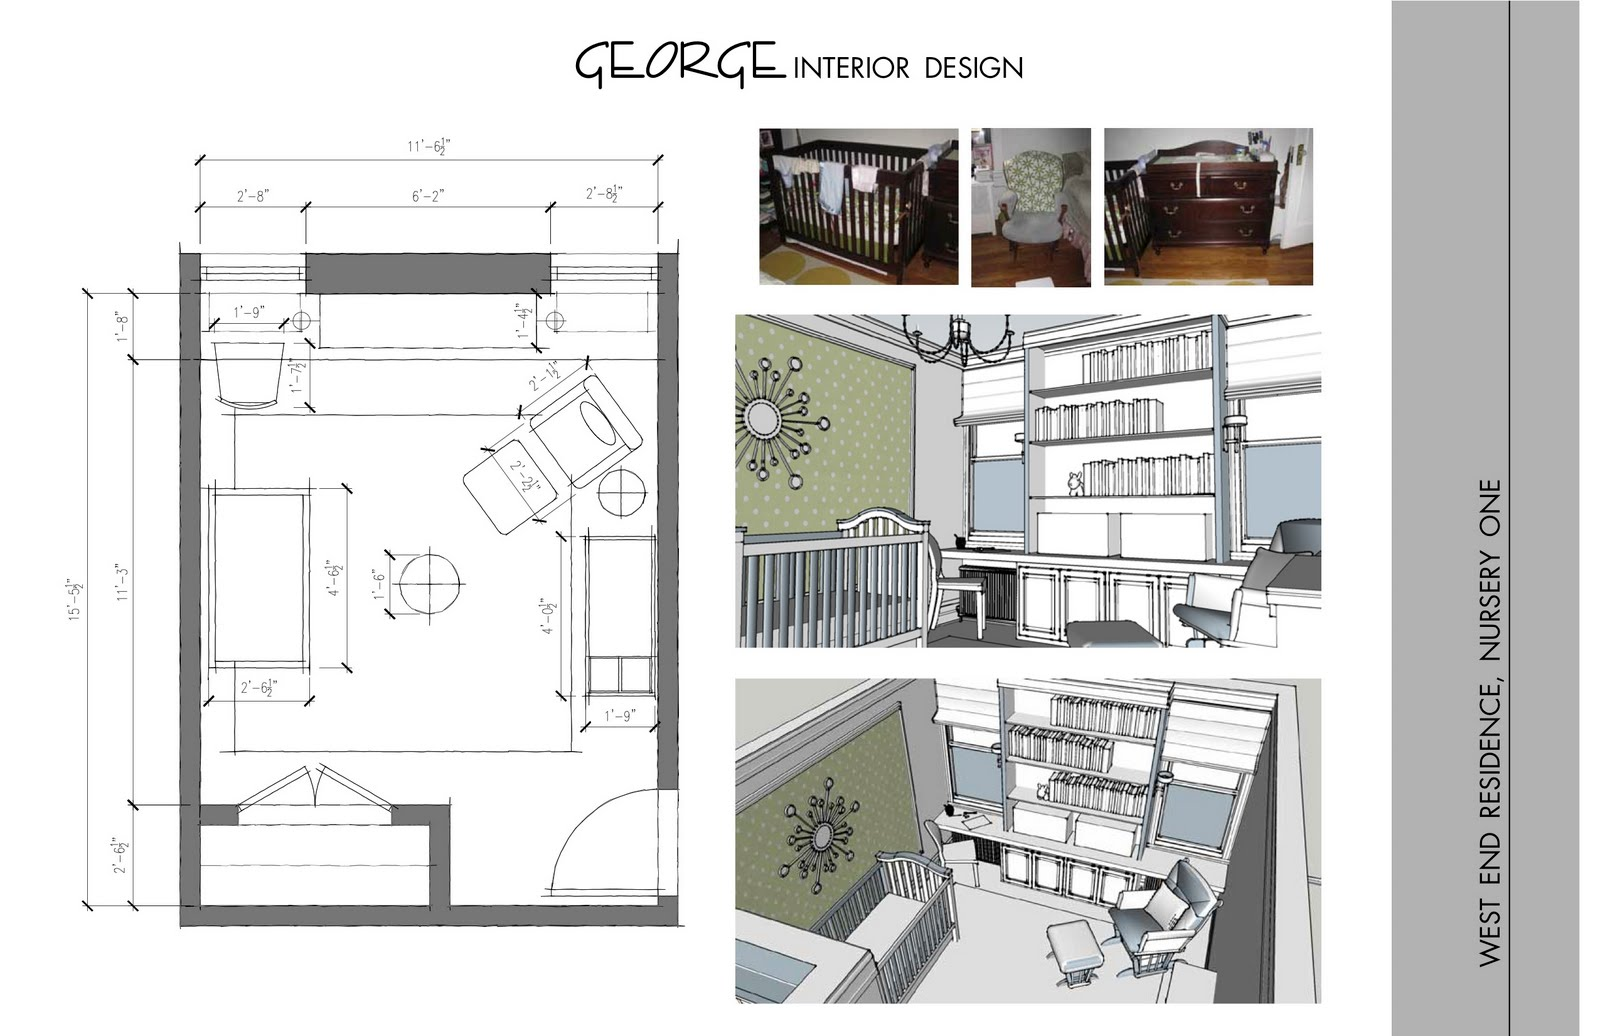 George interior design new york condo schematic design for New york condo interior design